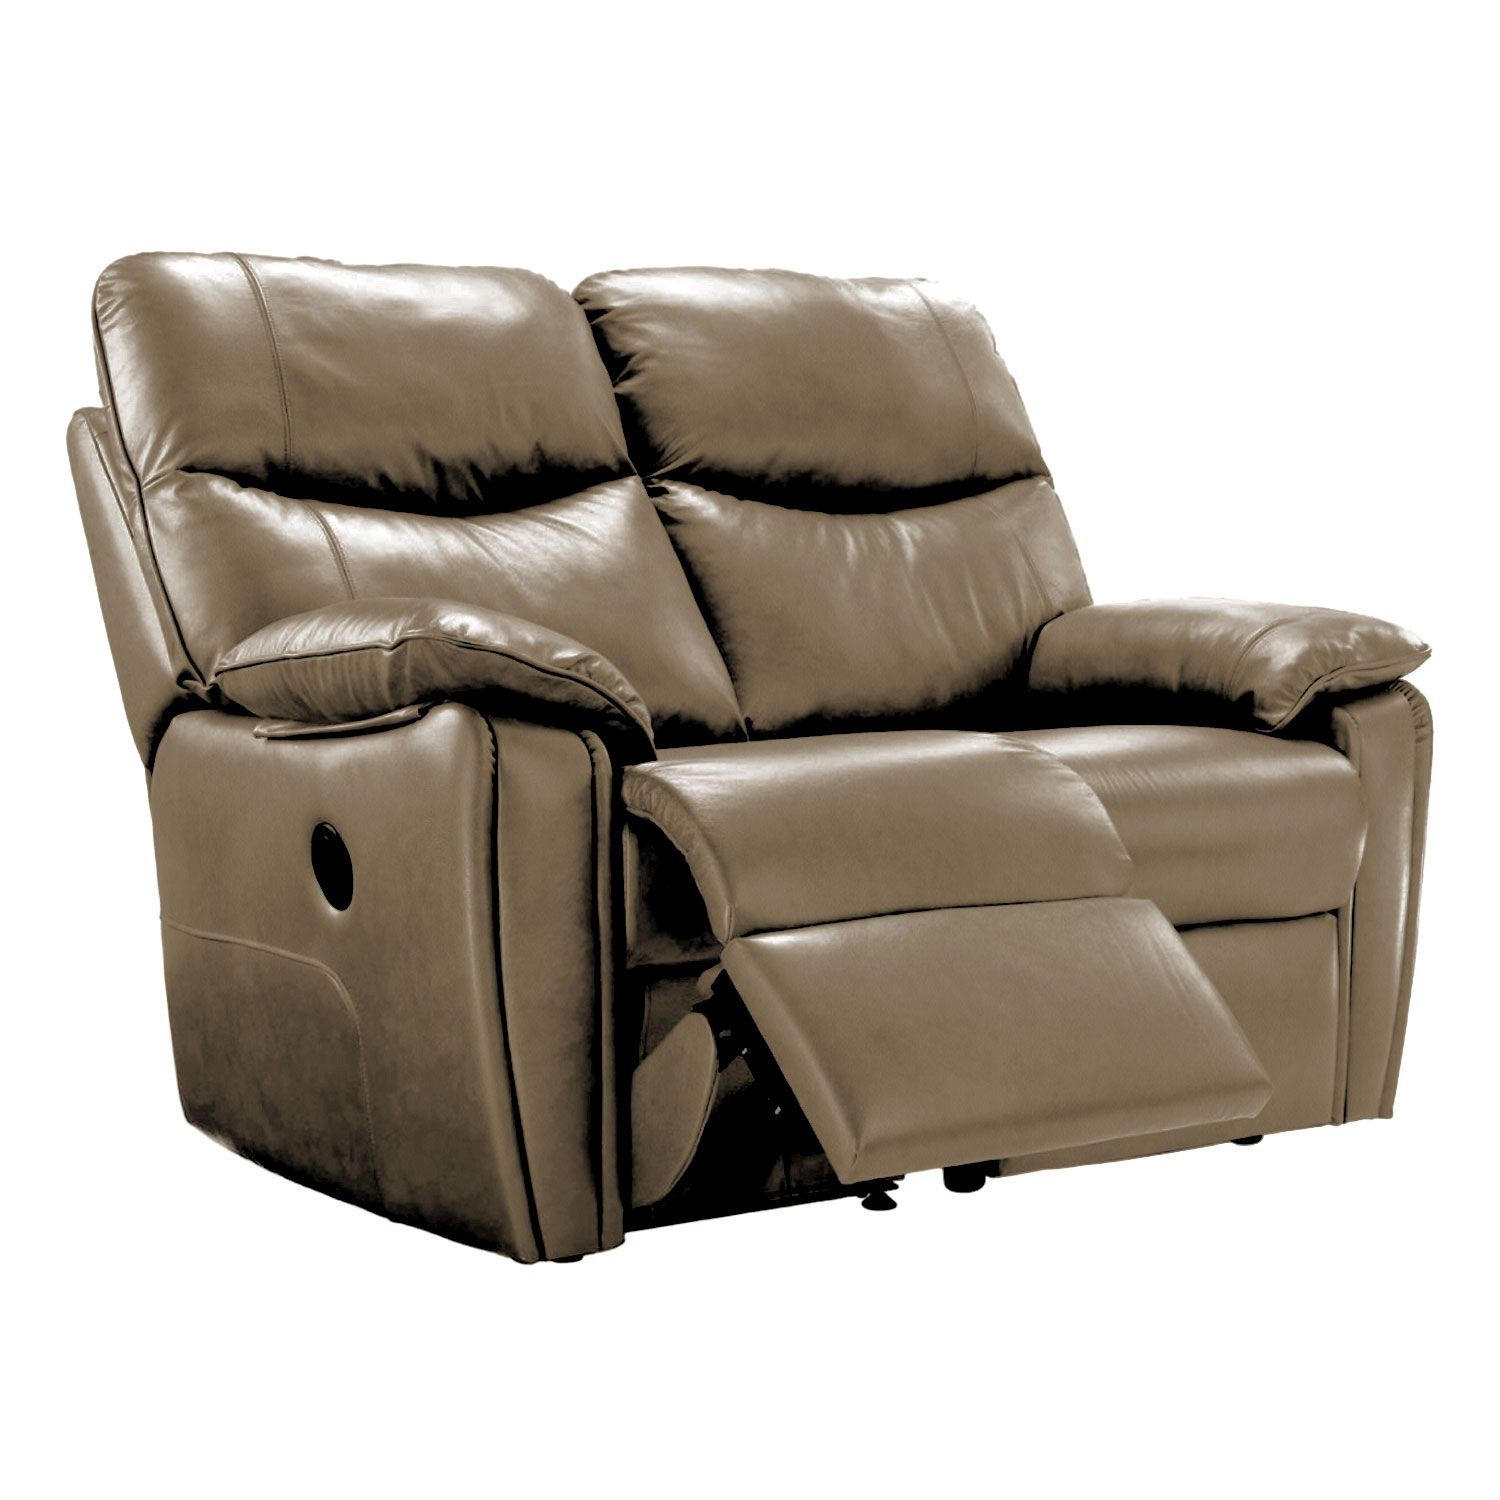 G Plan Henley Two Seater Double Manual Recliner Leather Sofa